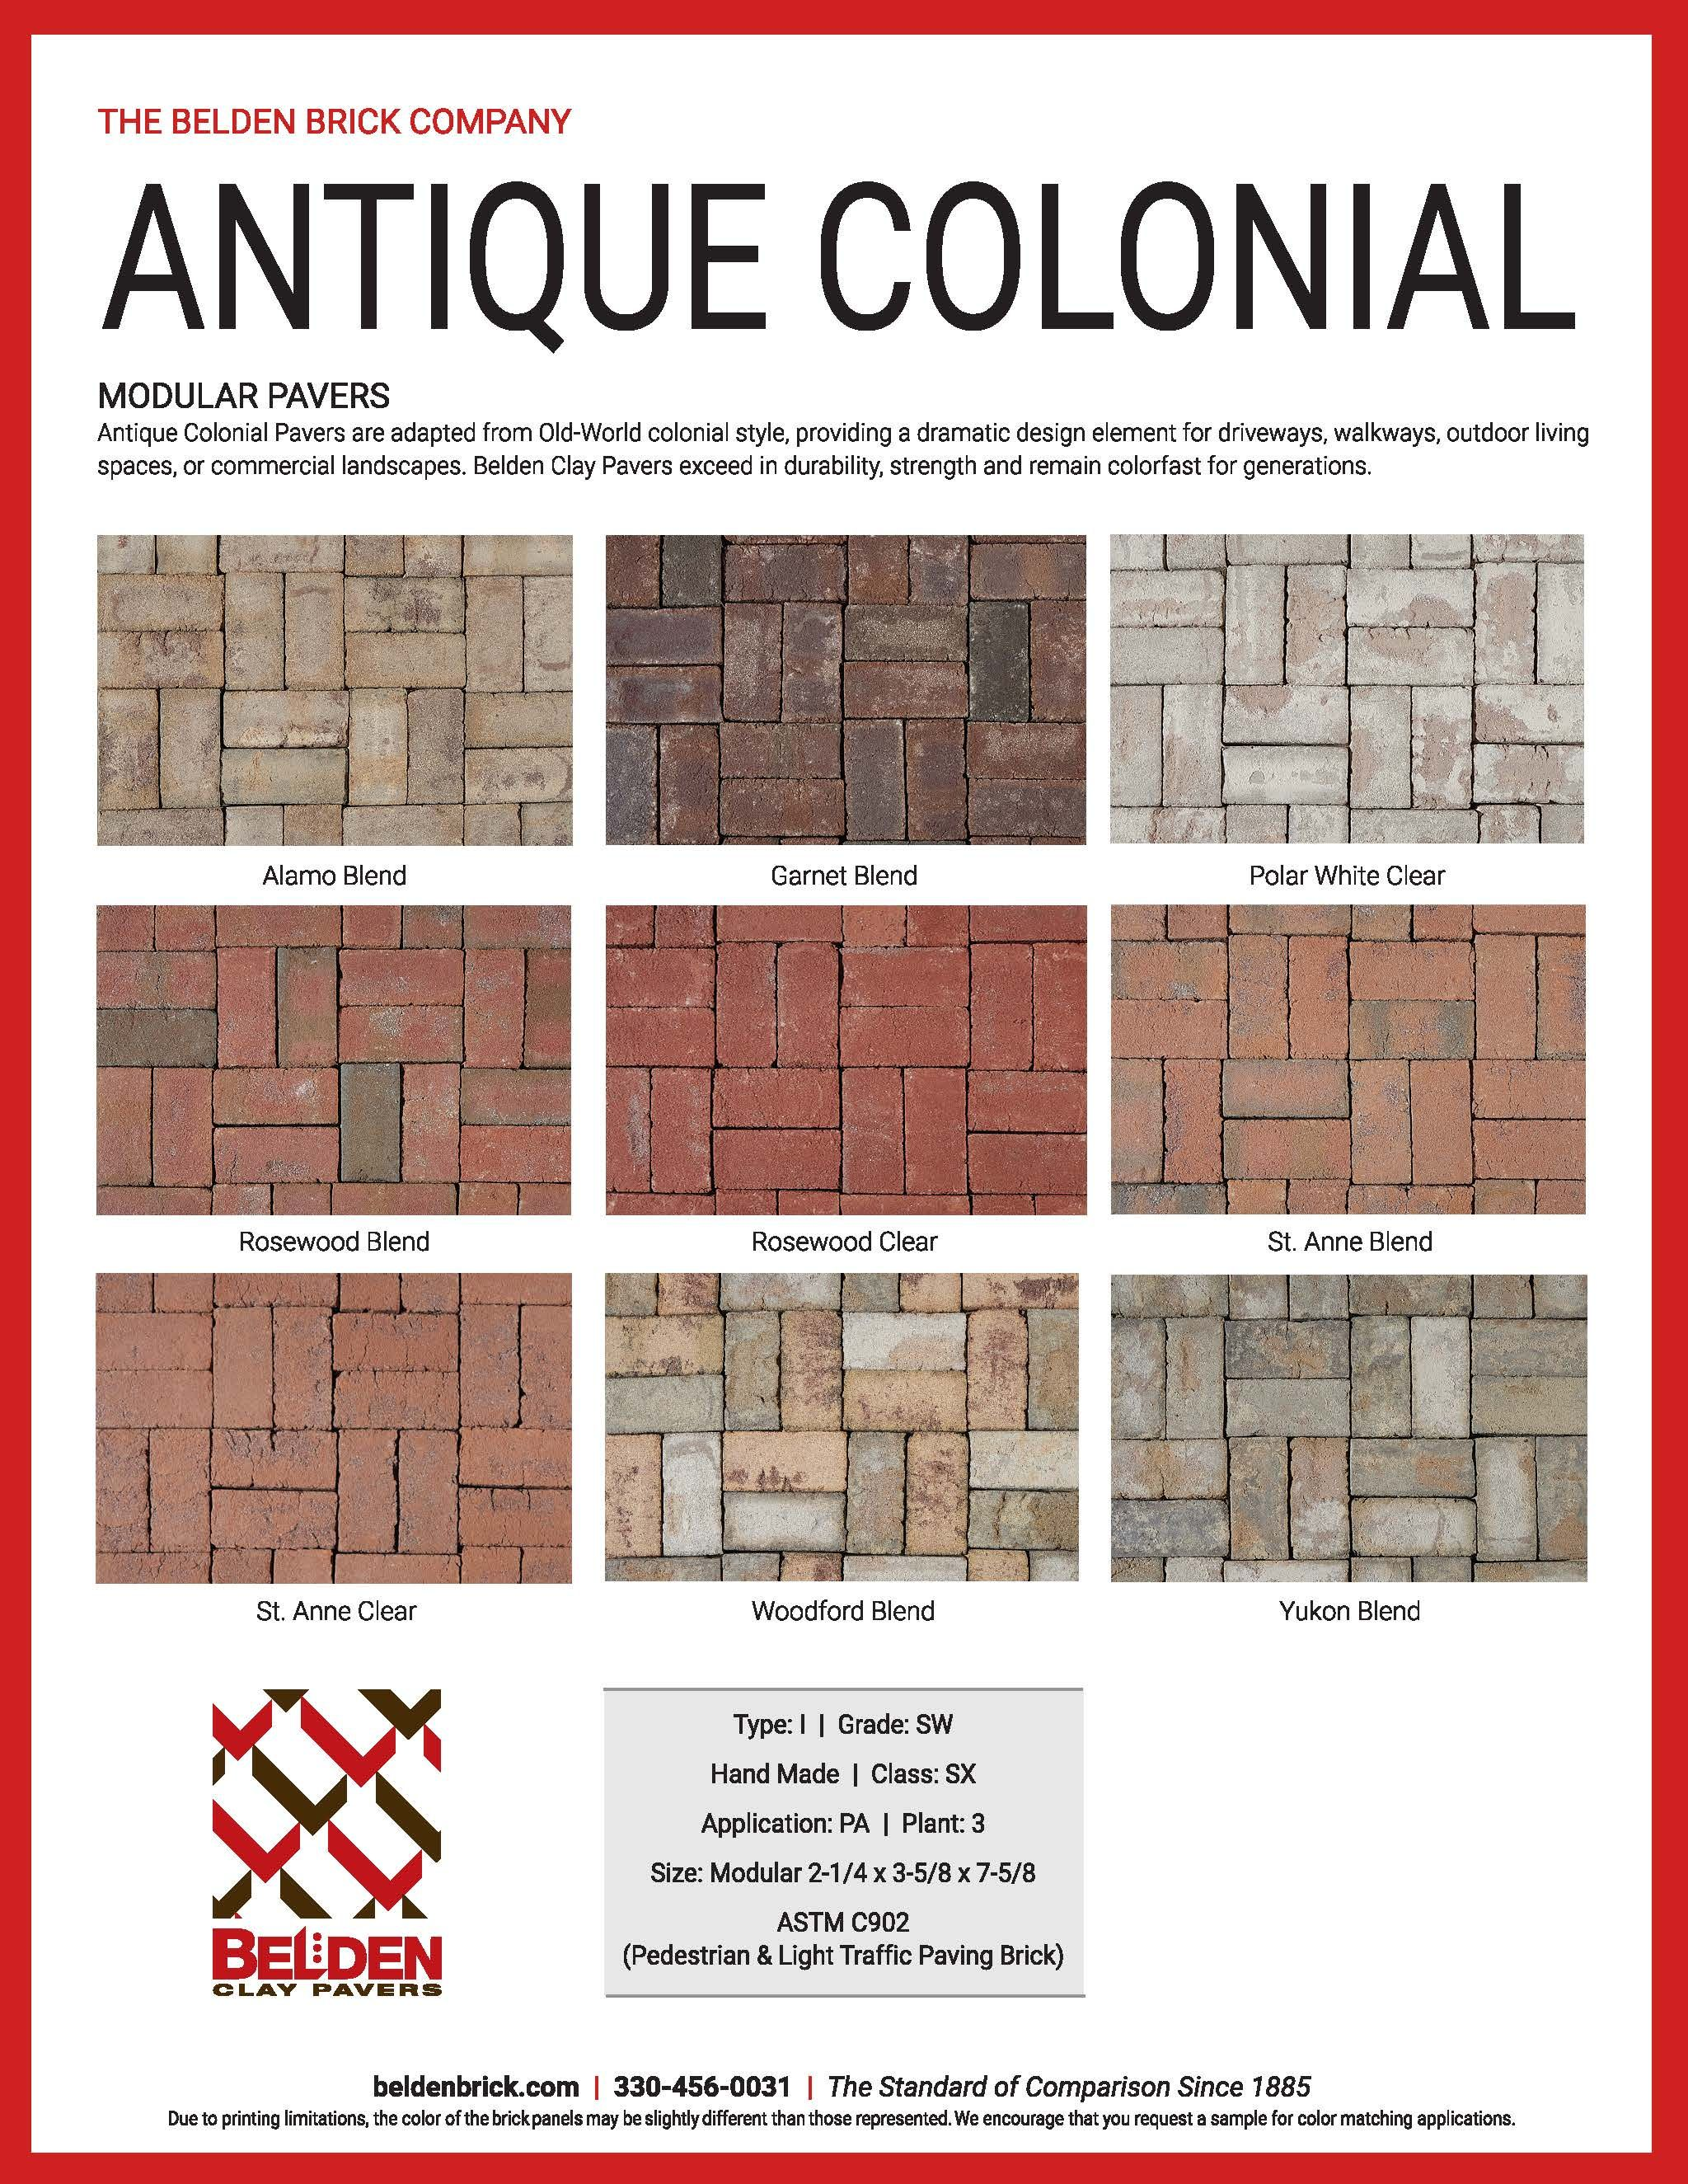 Antique Colonial Clay Pavers